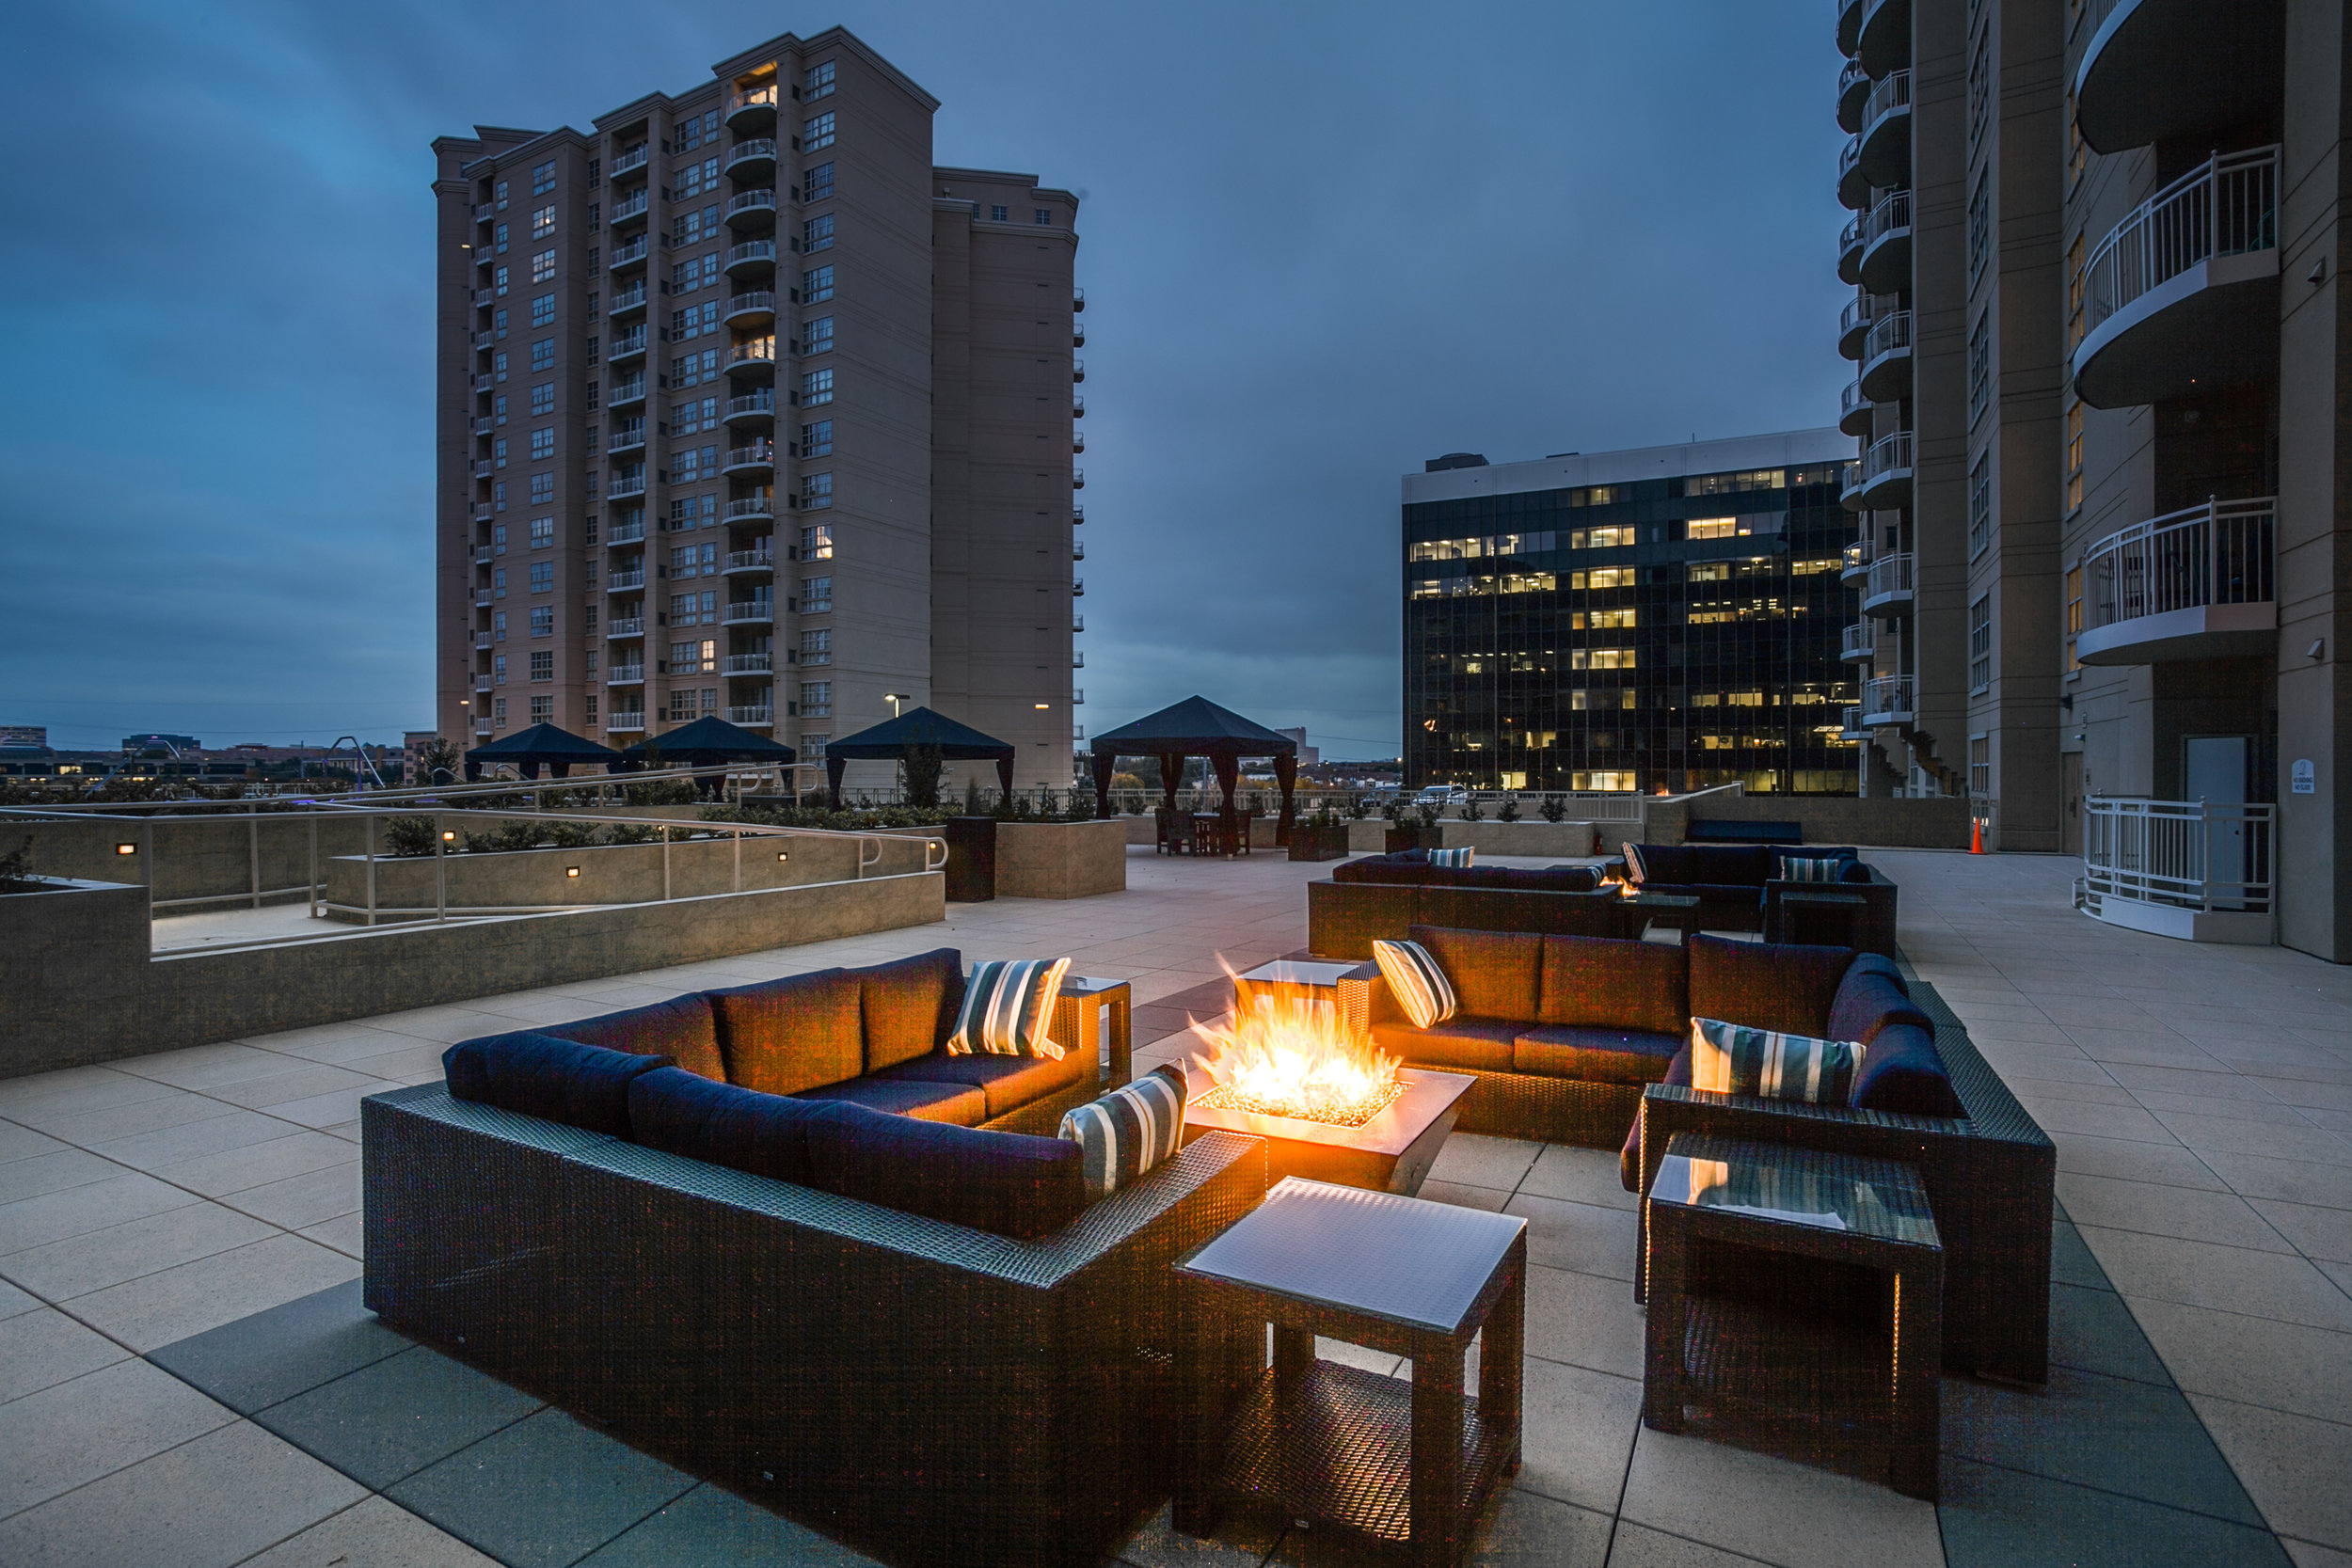 Fire pits  - Two fire pit social gathering areas are located on the Main Pool Deck, just outside the Fitness Center. Each area includes outdoor couches and tables. To operate, simply turn the timer knob on the adjacent wall. A great place to keep warm and meet your neighbors on a cold night.Hours: Pool Deck, BBQs and Fire Pits open 7:00 a.m. to midnight, subject to Quiet Hours 10:00 p.m. to 9:00 a.m.